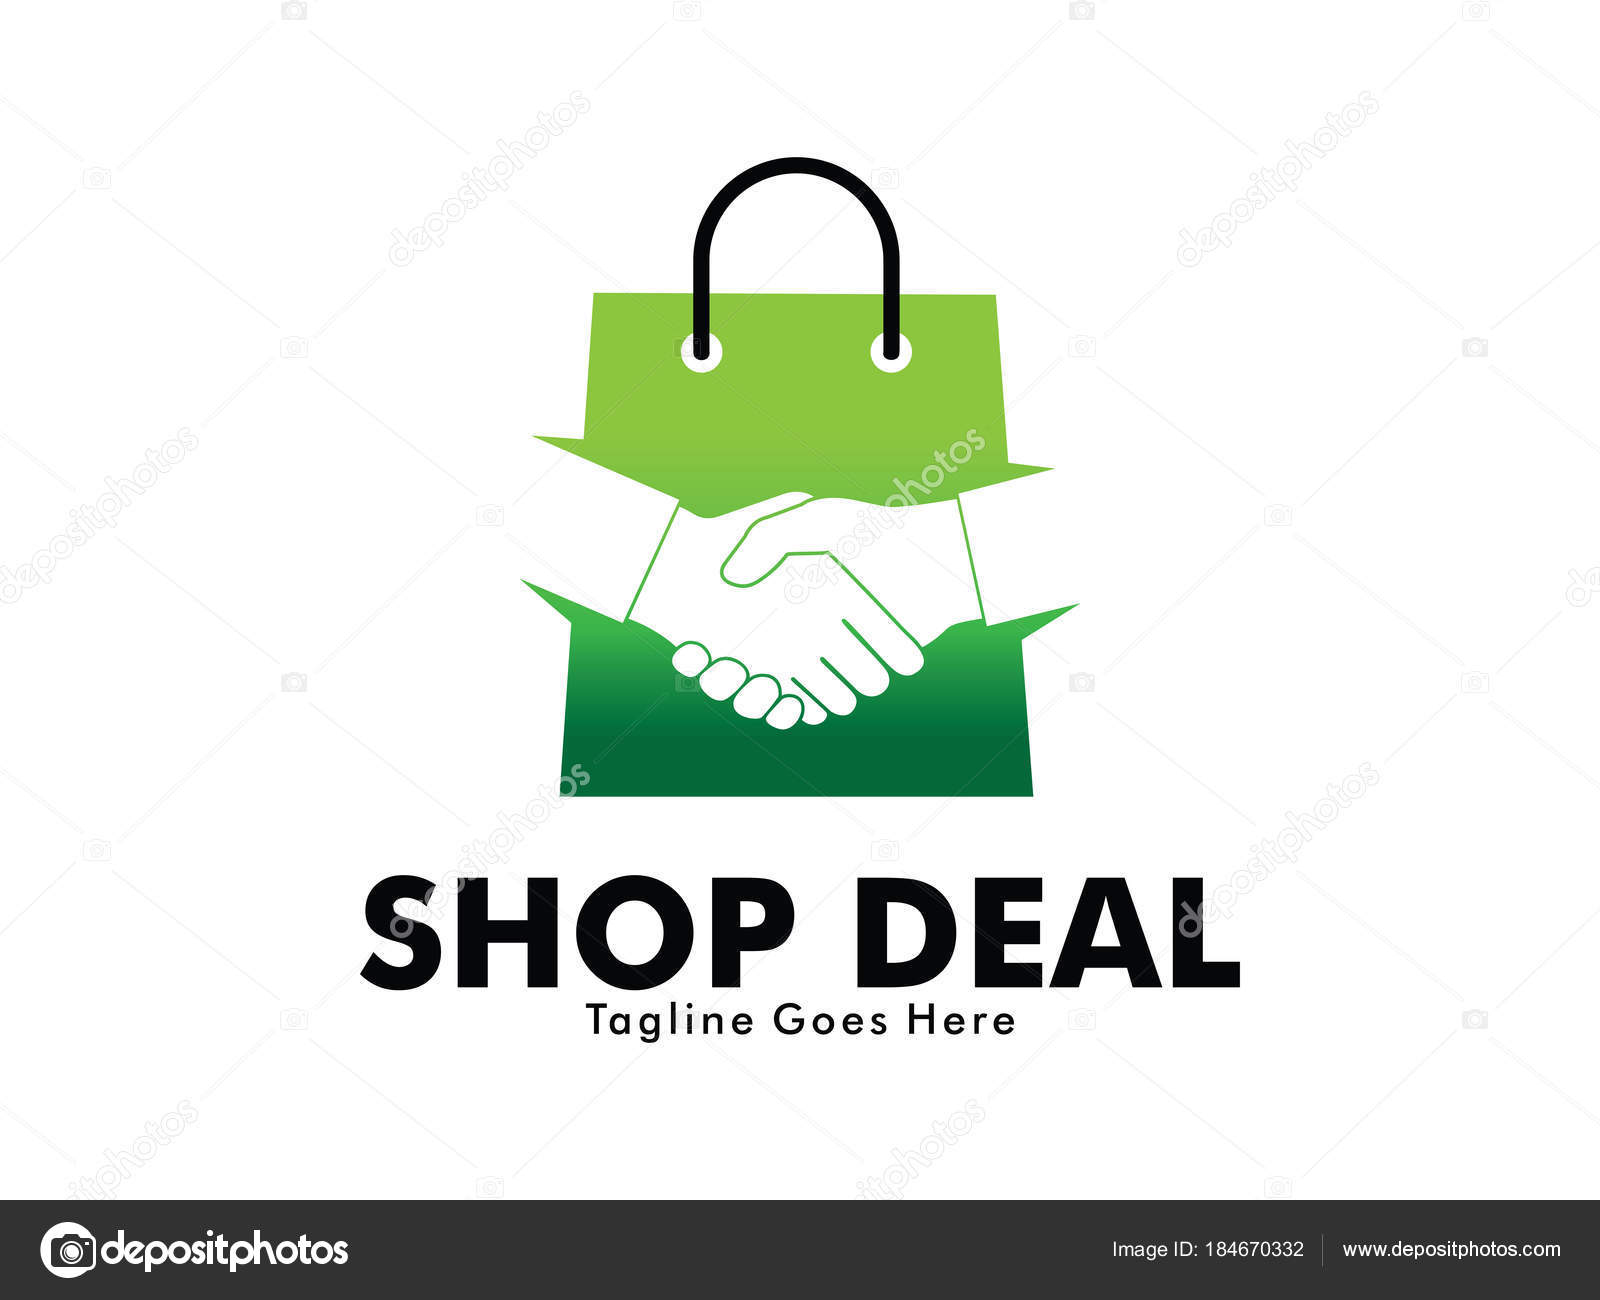 Design Online Shop Online Shop Deal Handshake Vector Logo Design Stock Vector